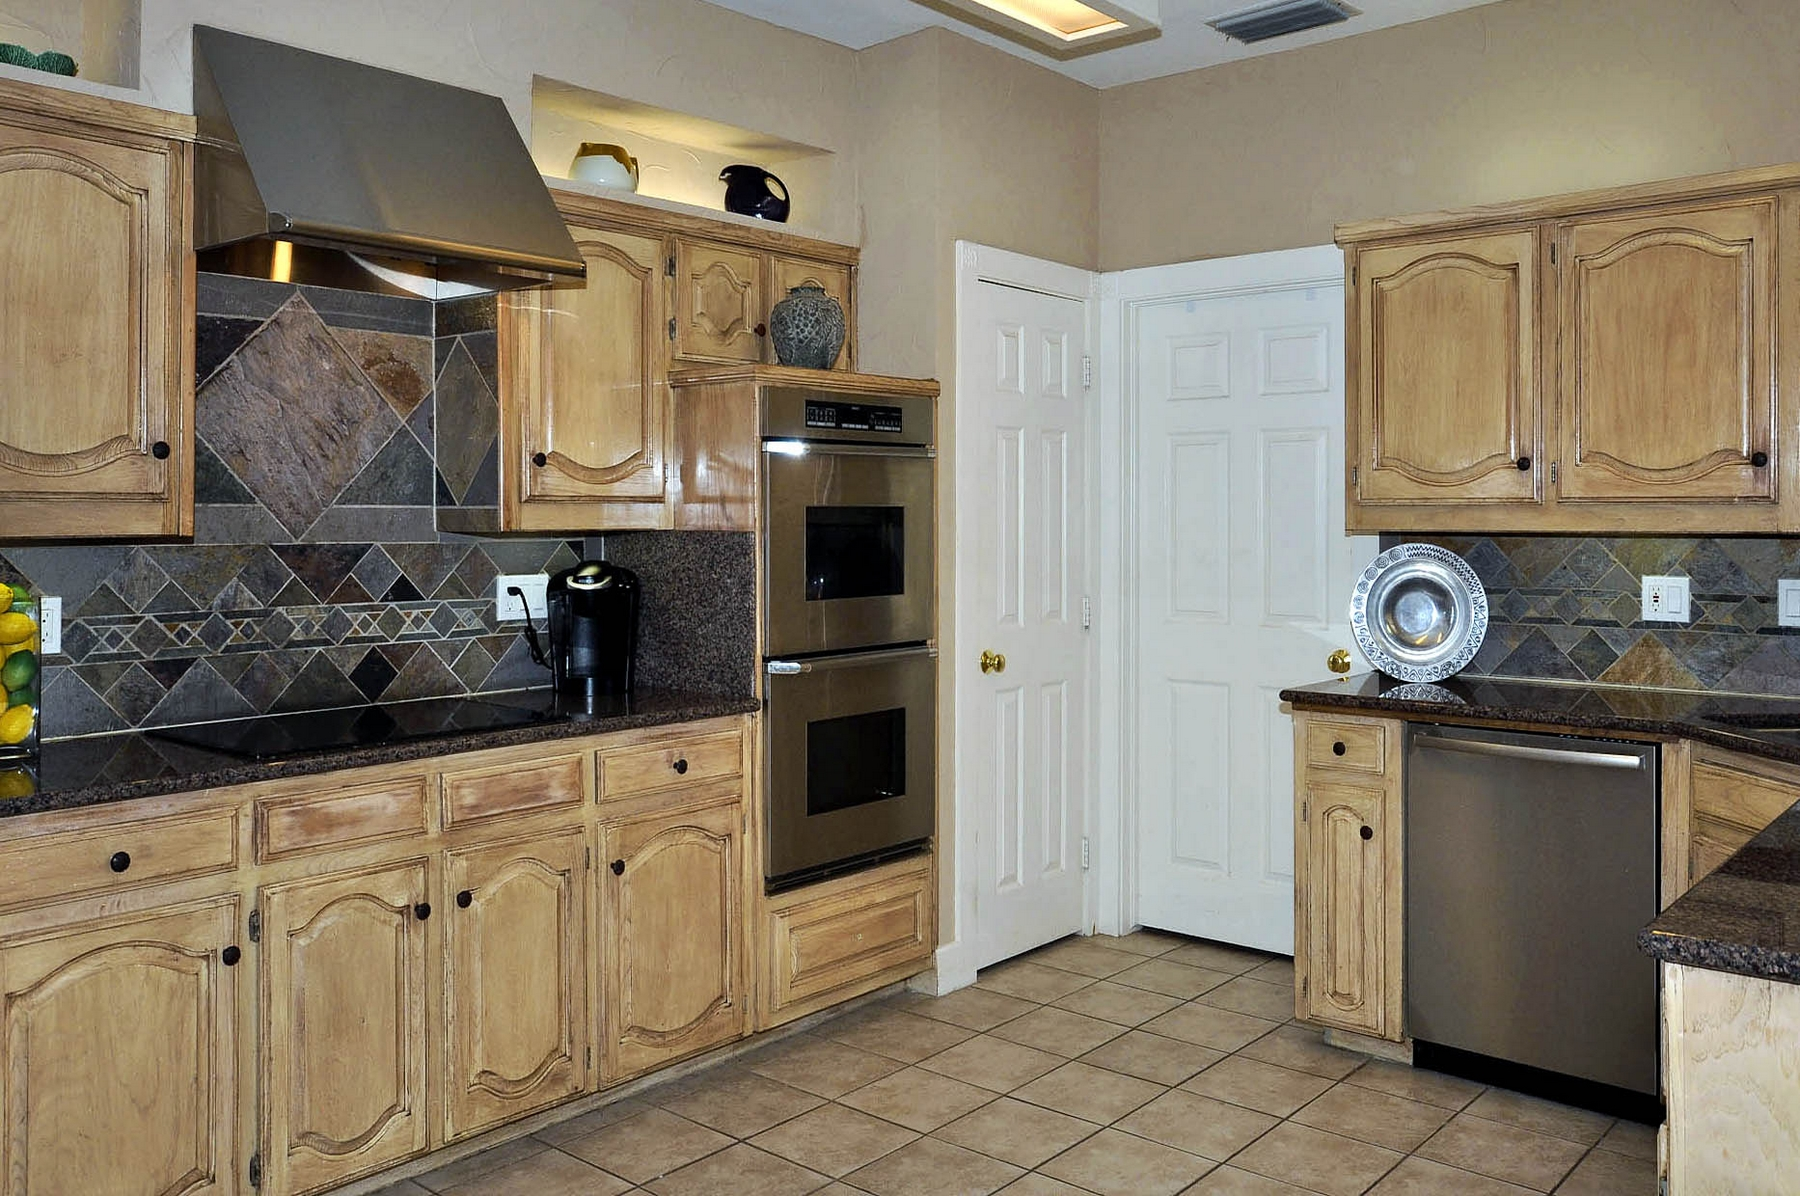 6016 Buffridge Kitchen Cooking Area.jpg